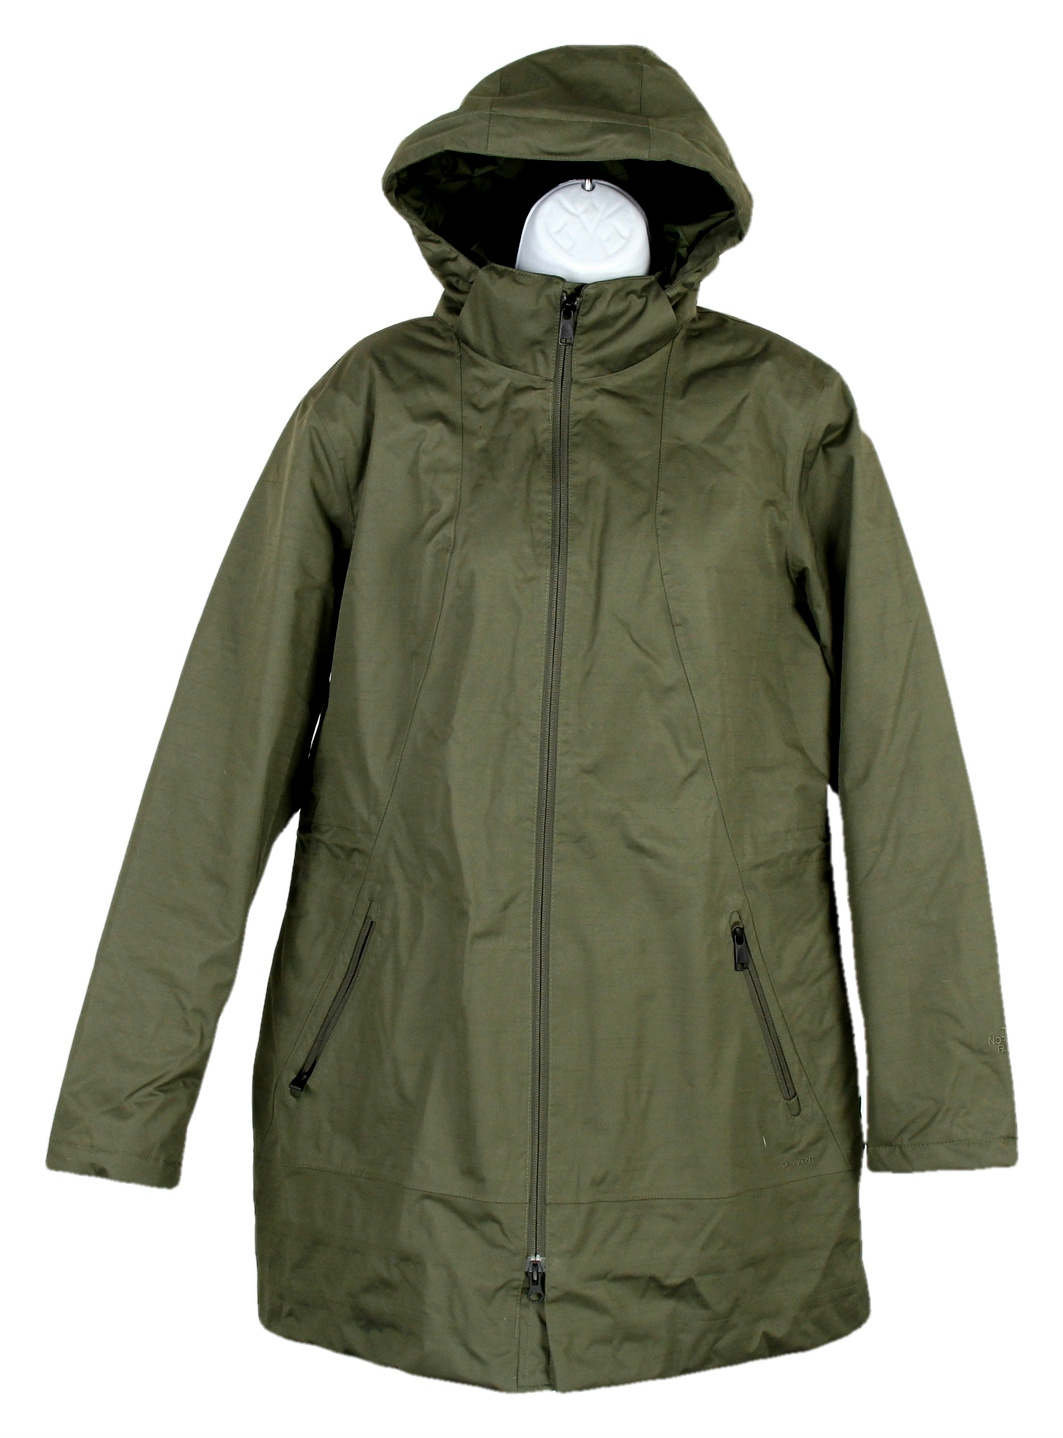 North Face Womens Parka Sale | Up to 70% Off | Best Deals ...